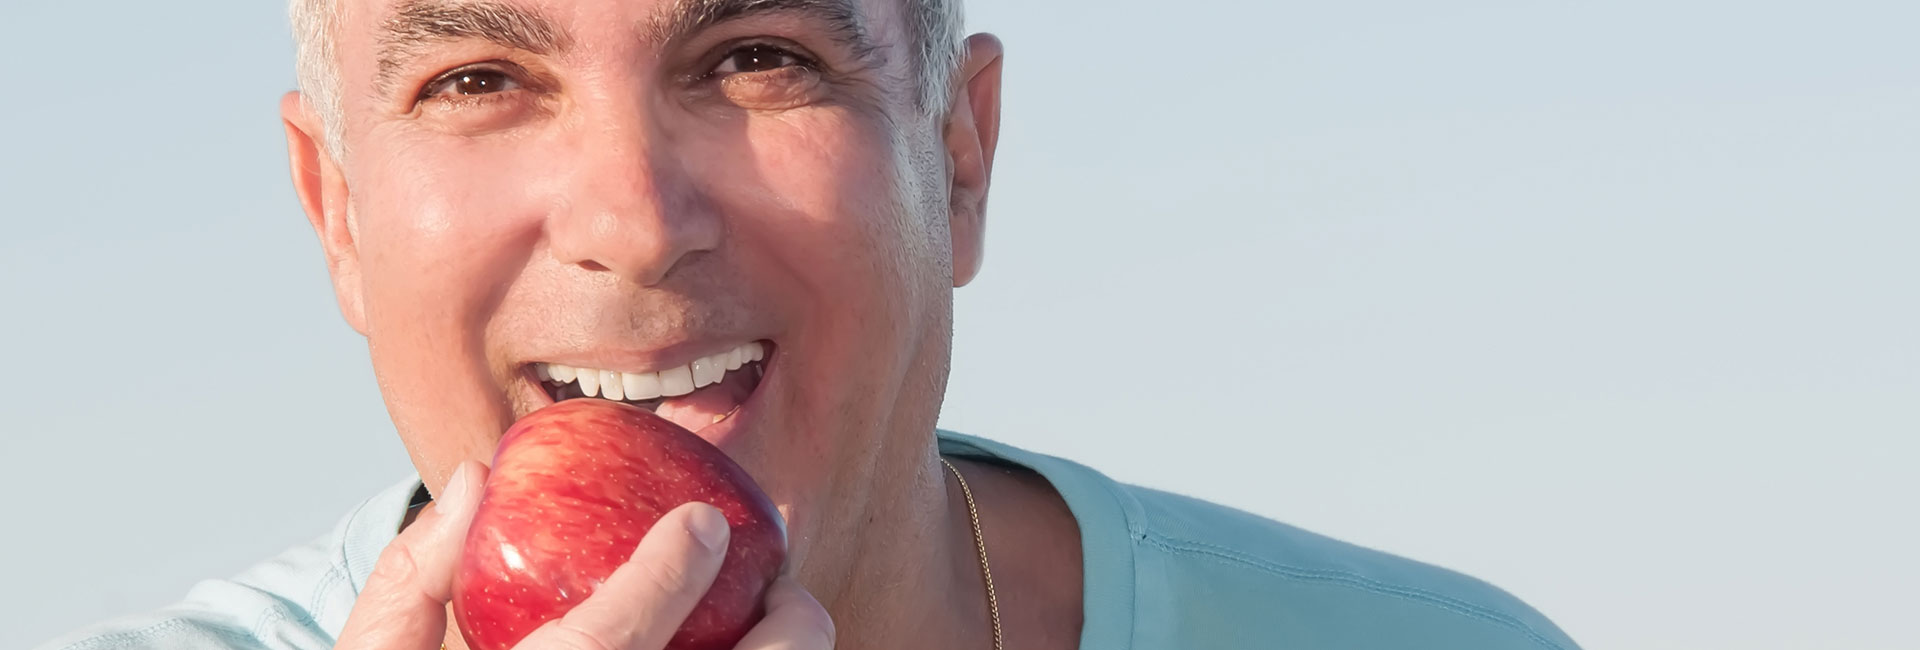 Elderly man with strong teeth eating an apple